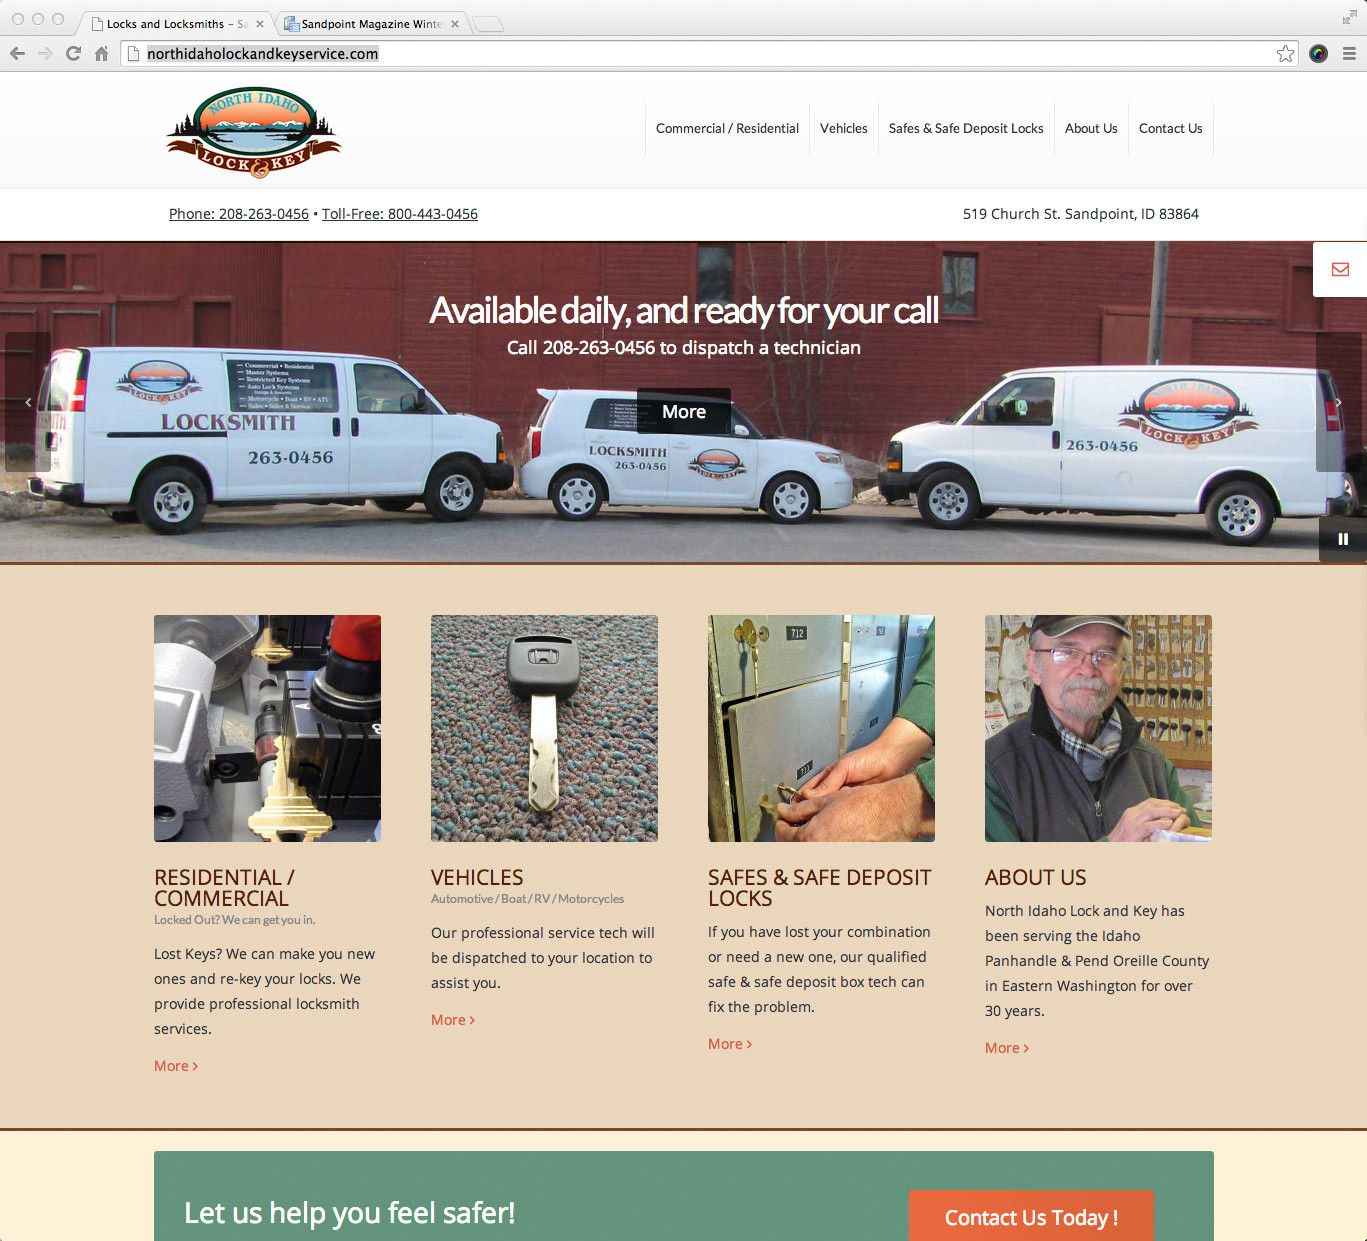 The client needed to have their website style and functionality updated. The information on the site was re-organized in a clear and concise manner. Thus allowing customers to quickly locate North Idaho Lock & Key, and get the services they need.